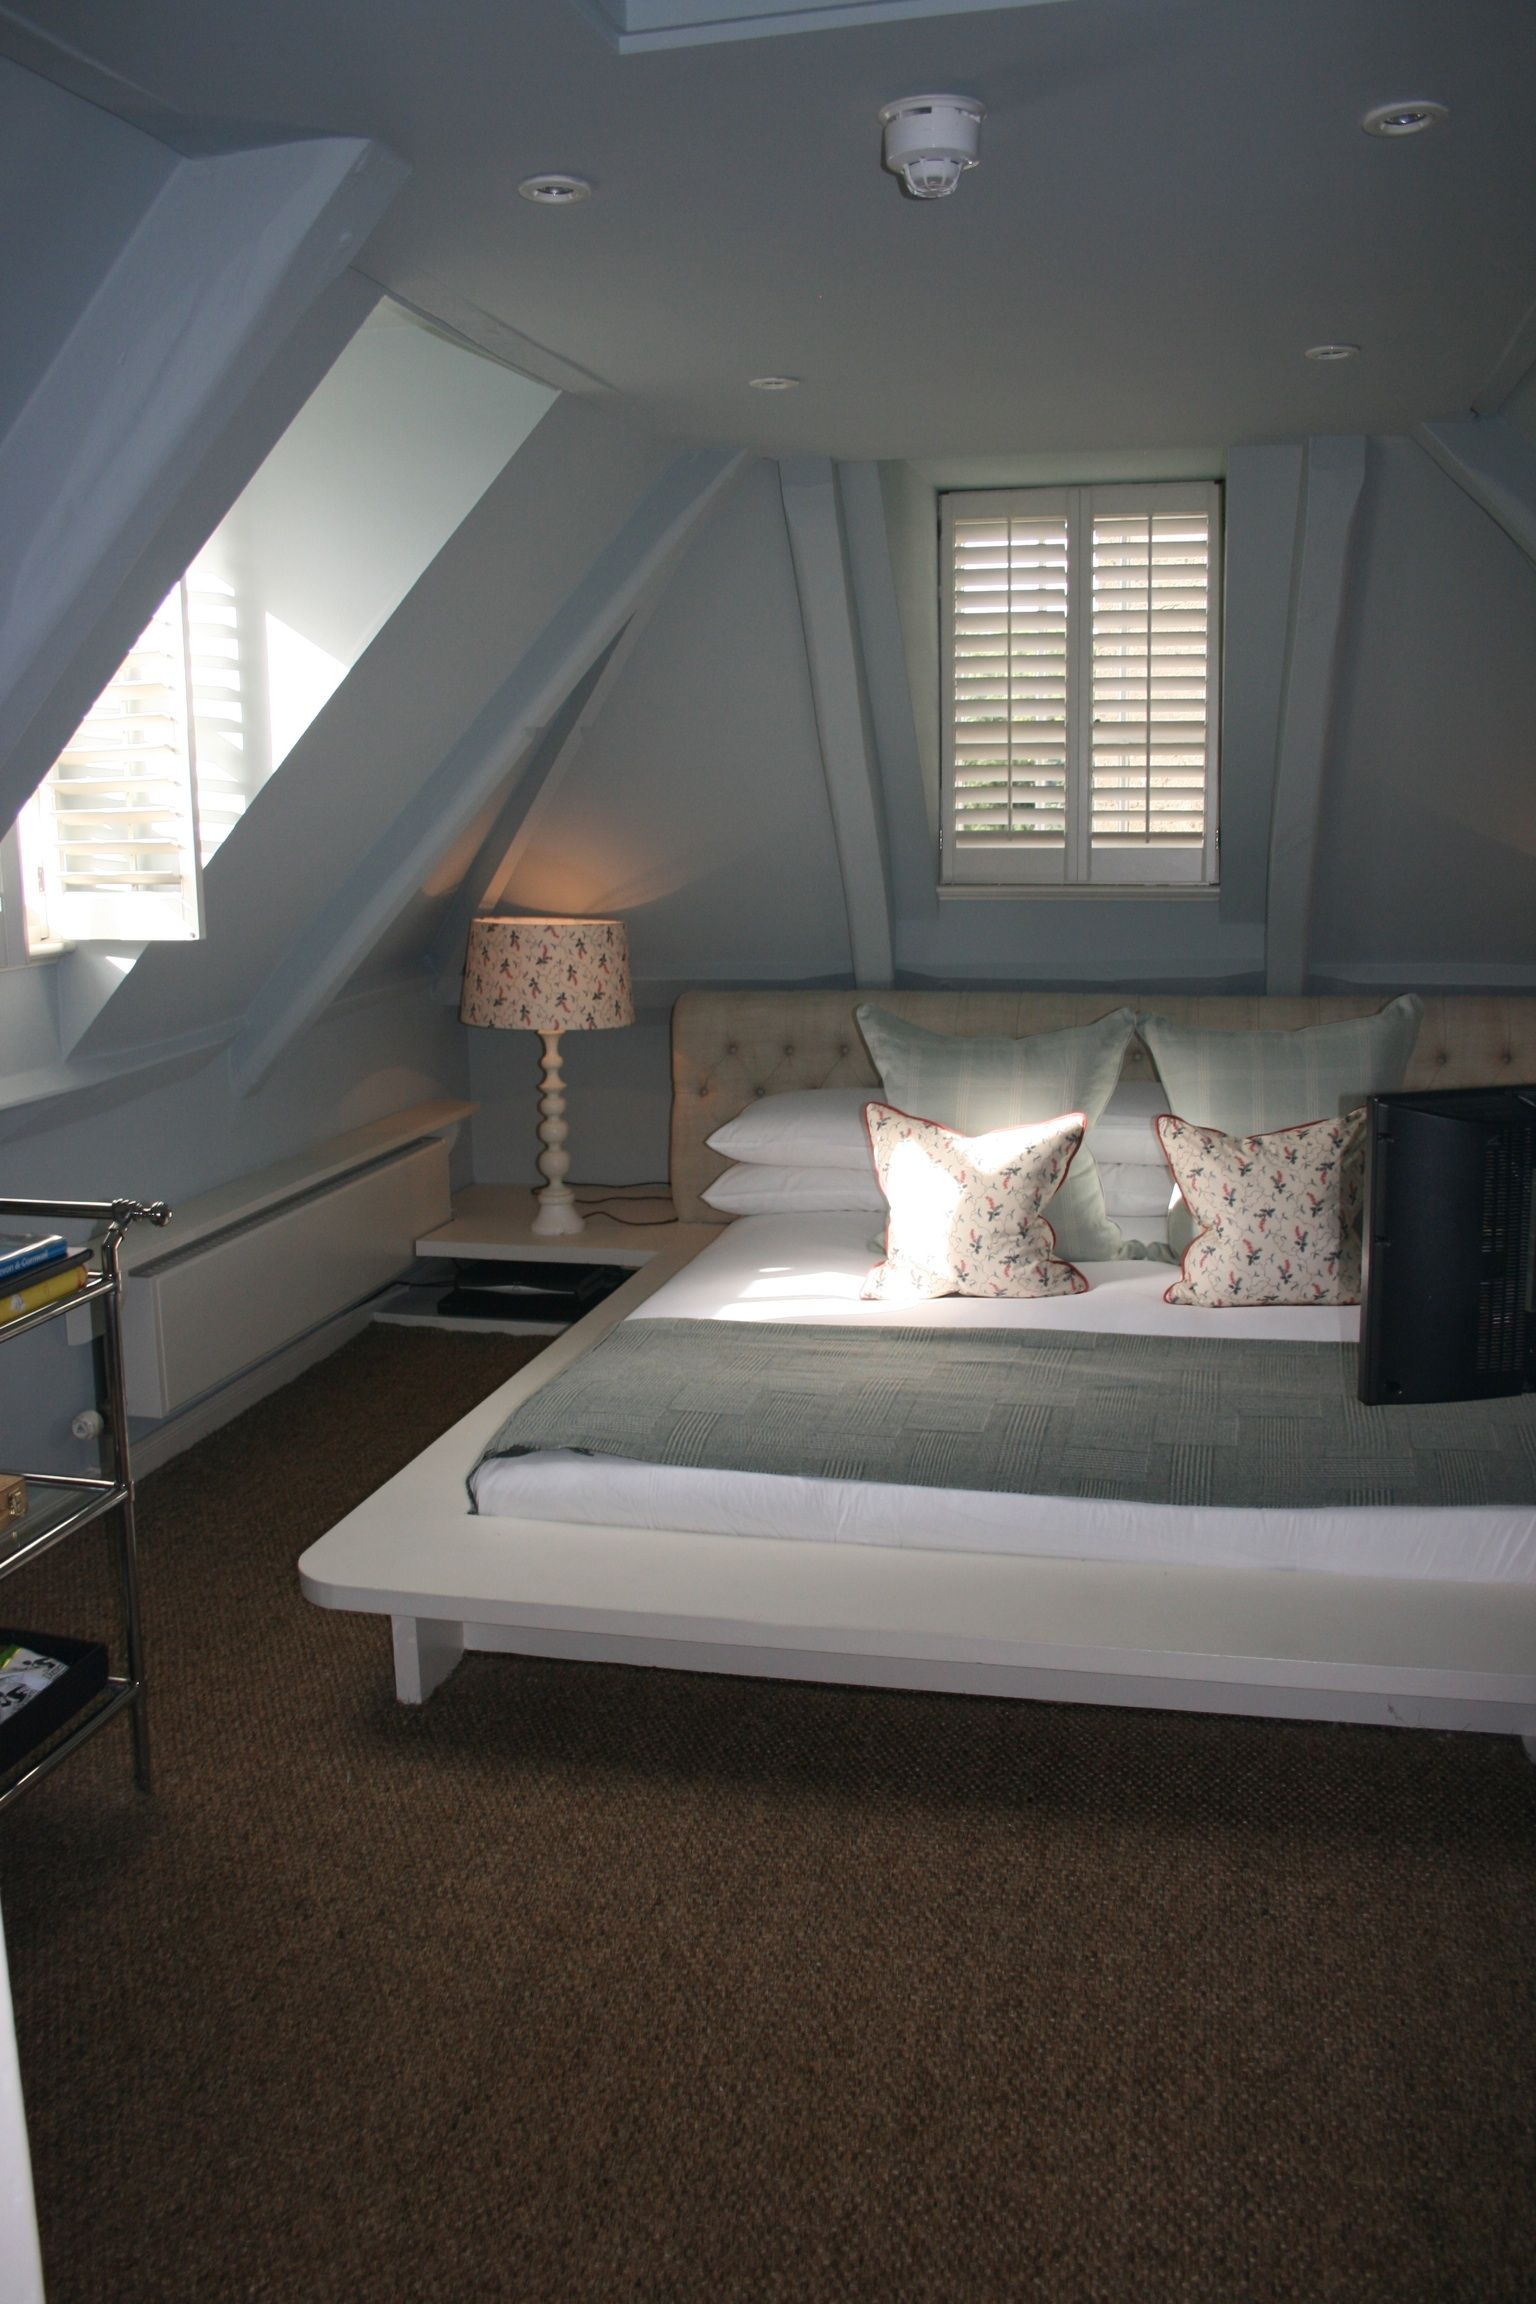 Loft bedroom and bathroom ideas  Babington House  Attic room inspiration  Pinterest  House